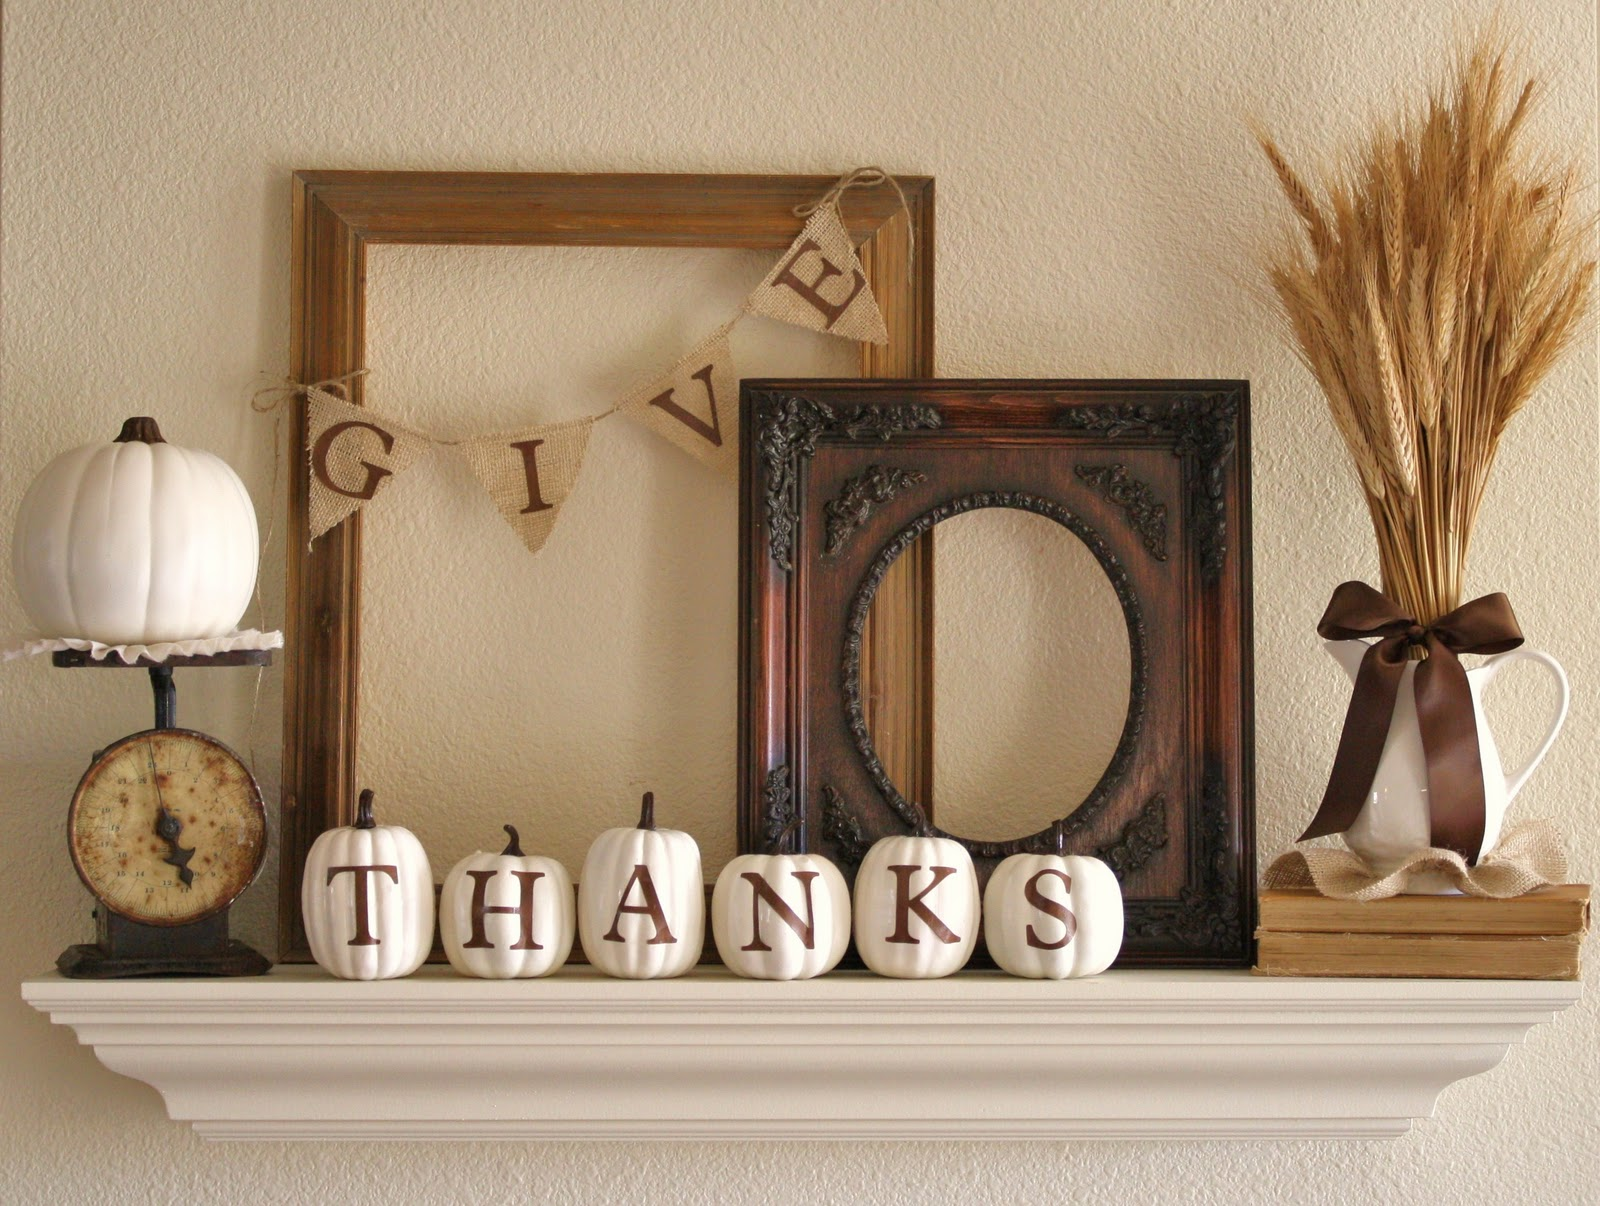 Dishfunctional designs giving thanks thankful decor for Thanksgiving home decorations ideas